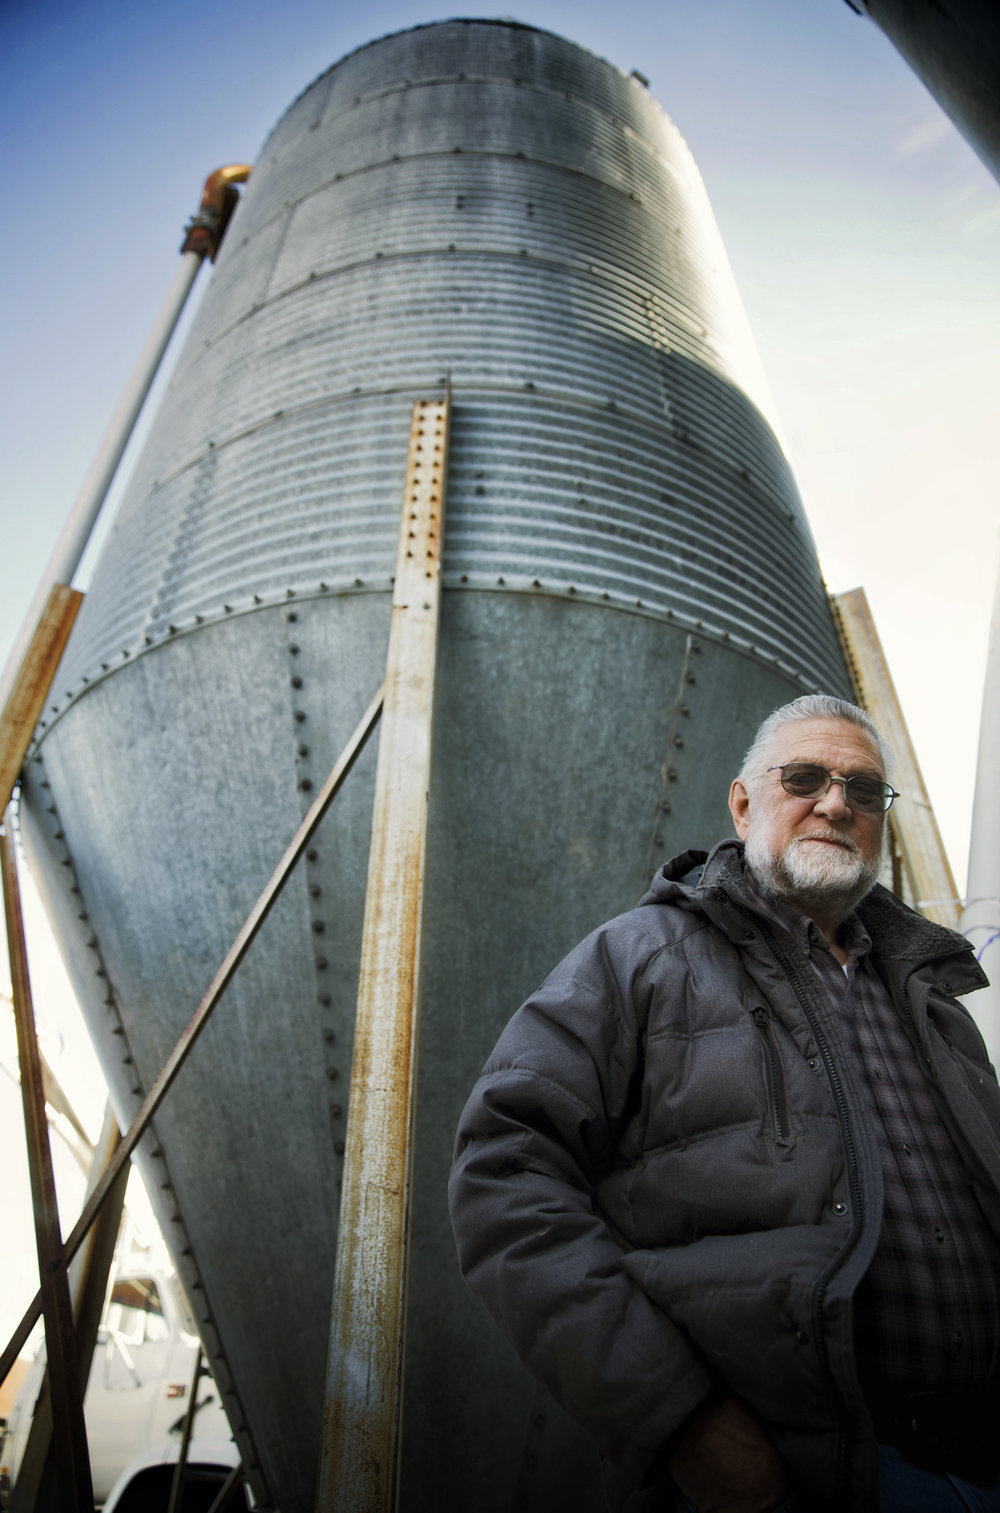 Owner Leo Ray stands next to one of the feed bins Thursday, March 9, 2017, at Fish Breeders of Idaho in Hagerman Idaho. Ray's business is installing a new extruder machine to produce their own fish feed in hopes of lowering production costs. Over the past 20 years the price for feed has more than doubled for Ray. 'There's a world shortage of fish meal,' he says. 'Fish meal is basically the trash fish of the ocean. In the last 10 years, the amount of fish meal harvested has leveled off.'